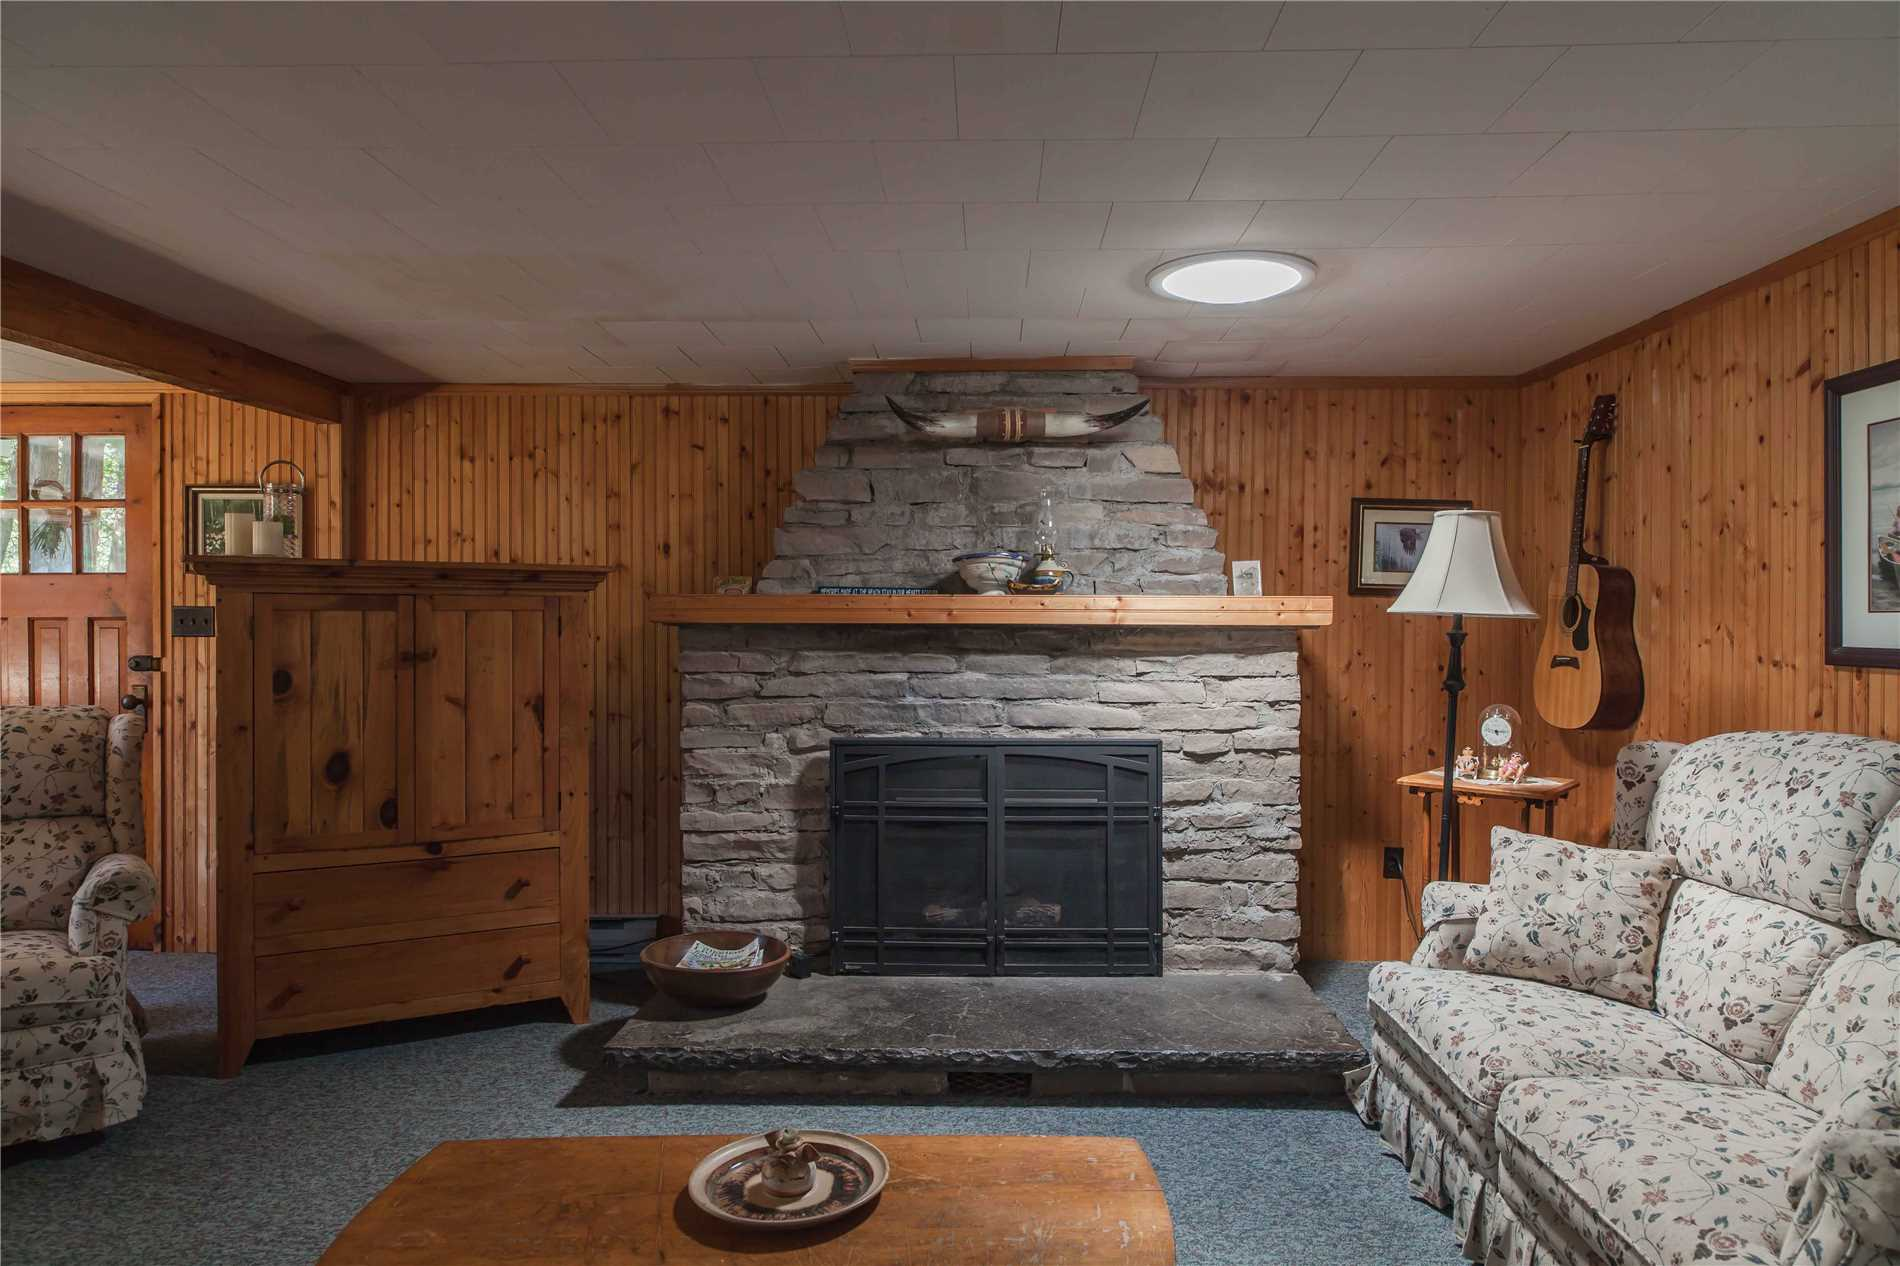 325 Lakeshore Blvd N, South Bruce Peninsula X4486458